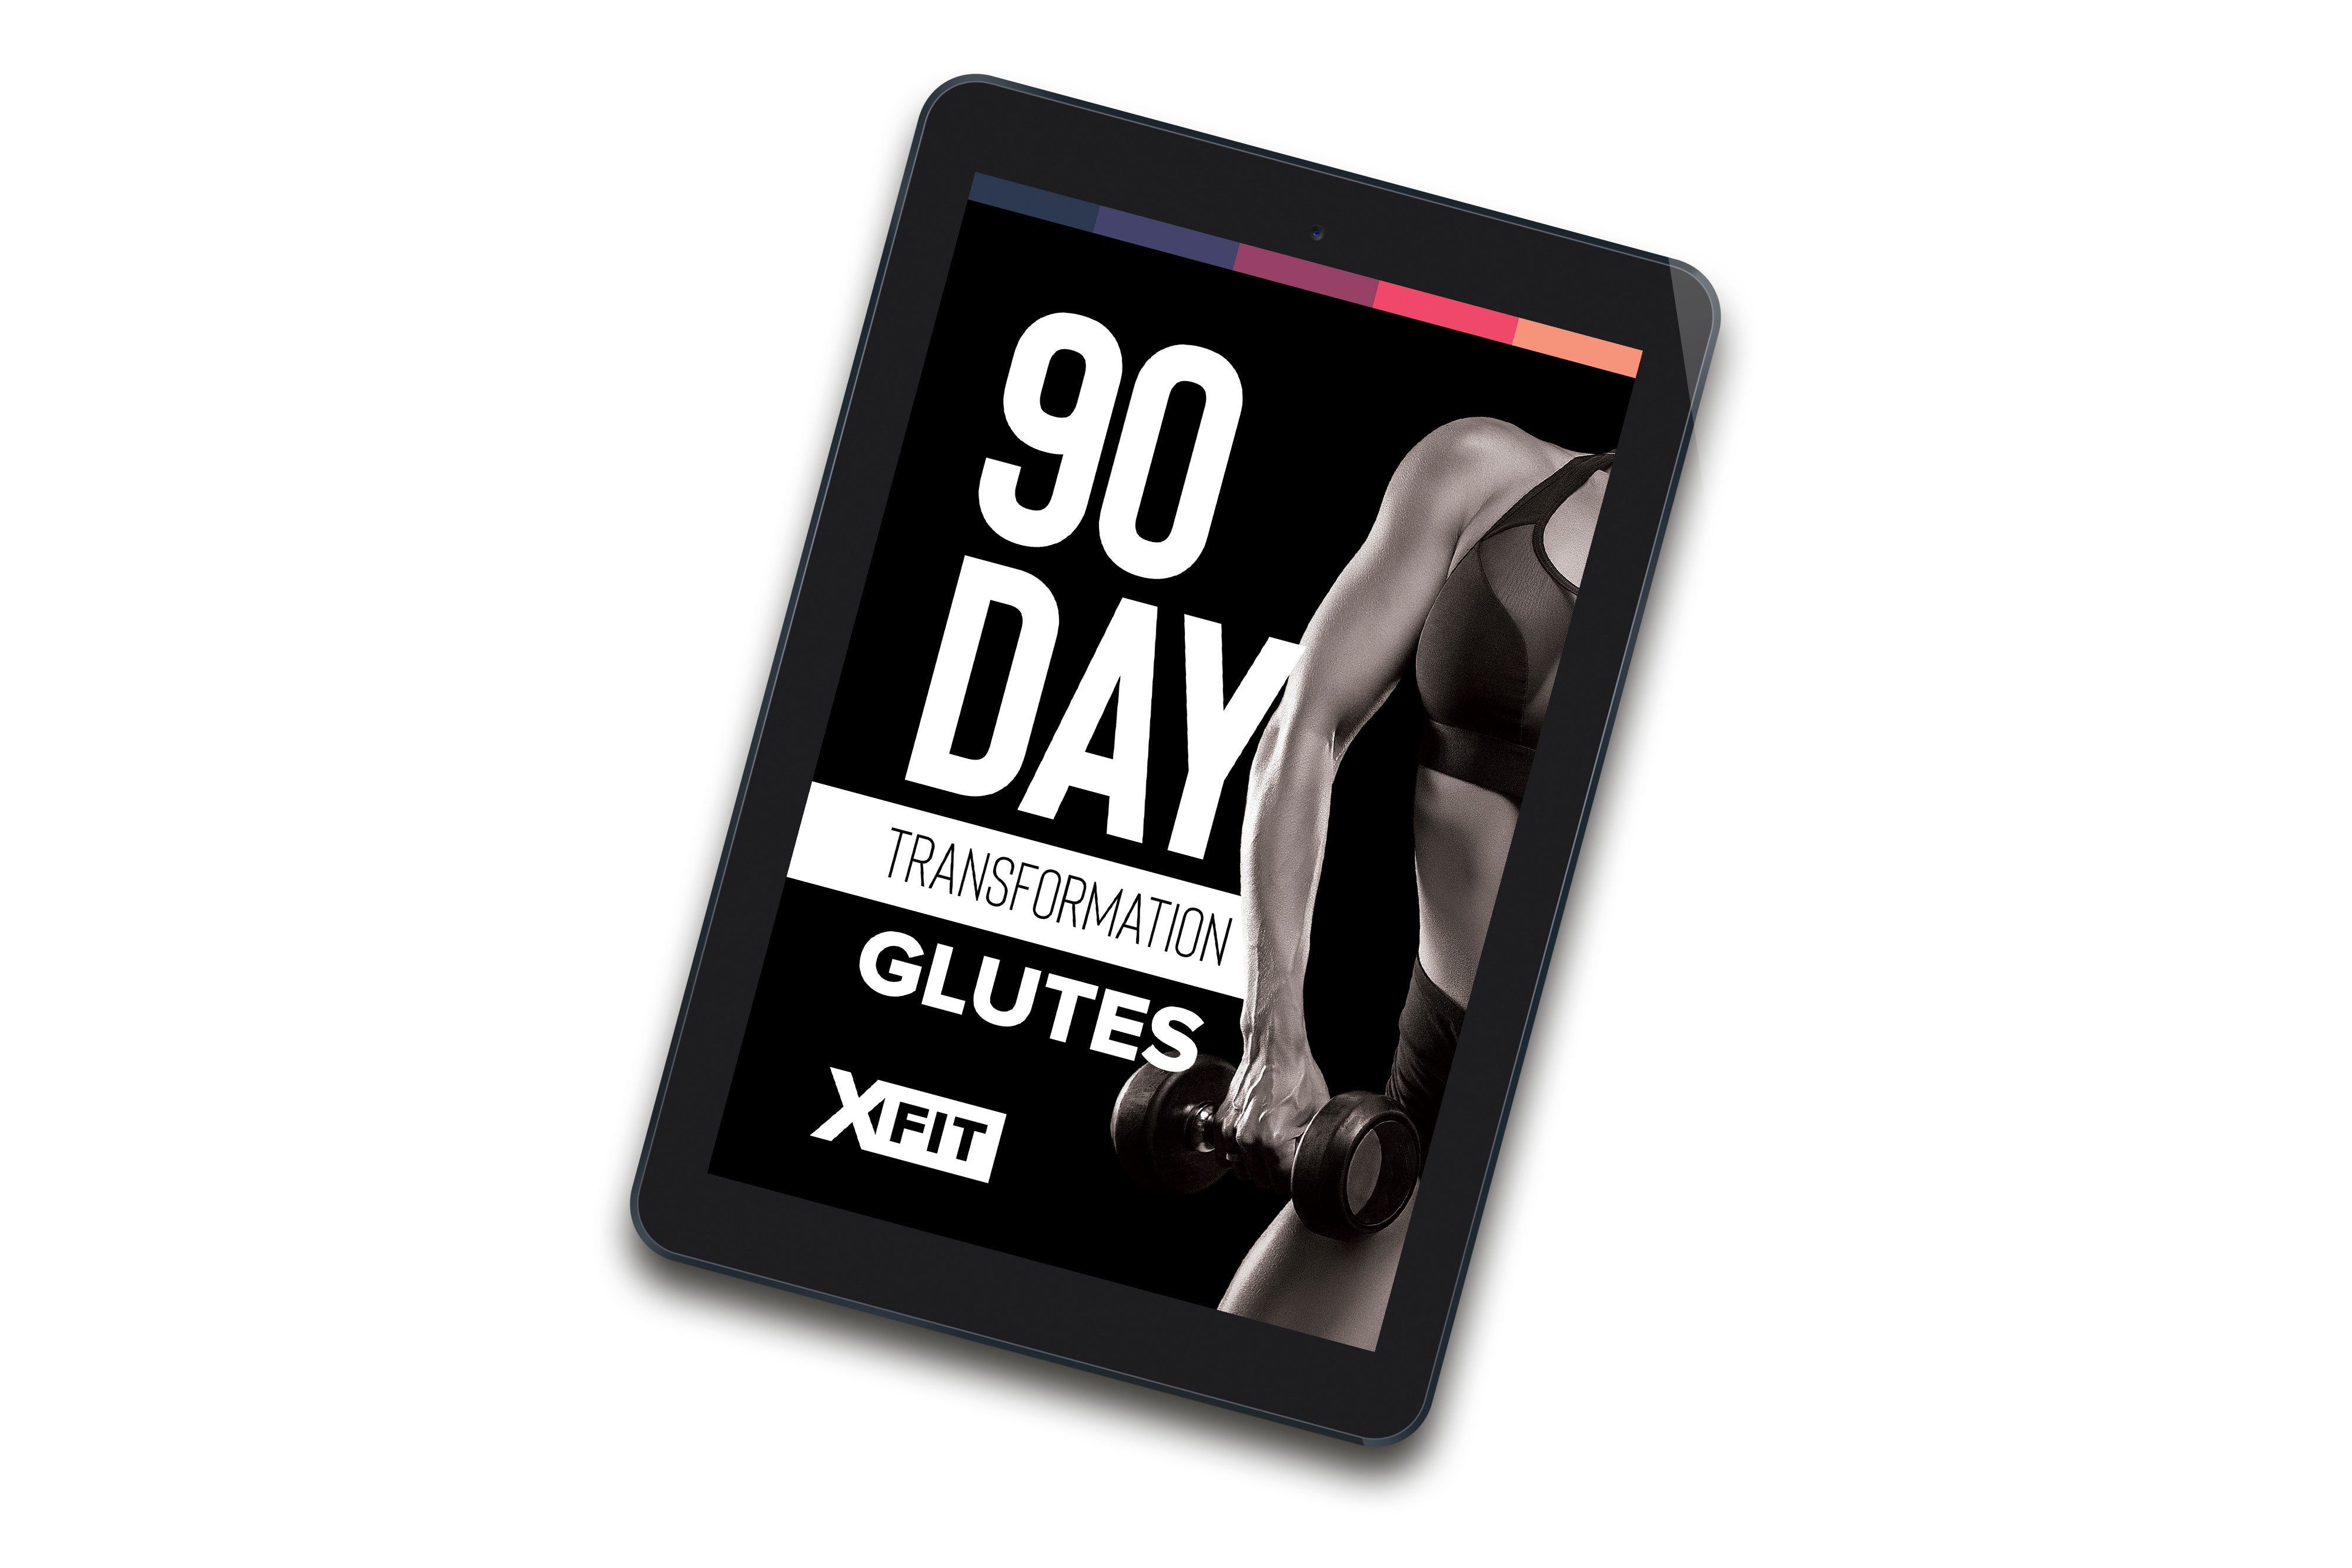 90 Day Transformation - Glutes